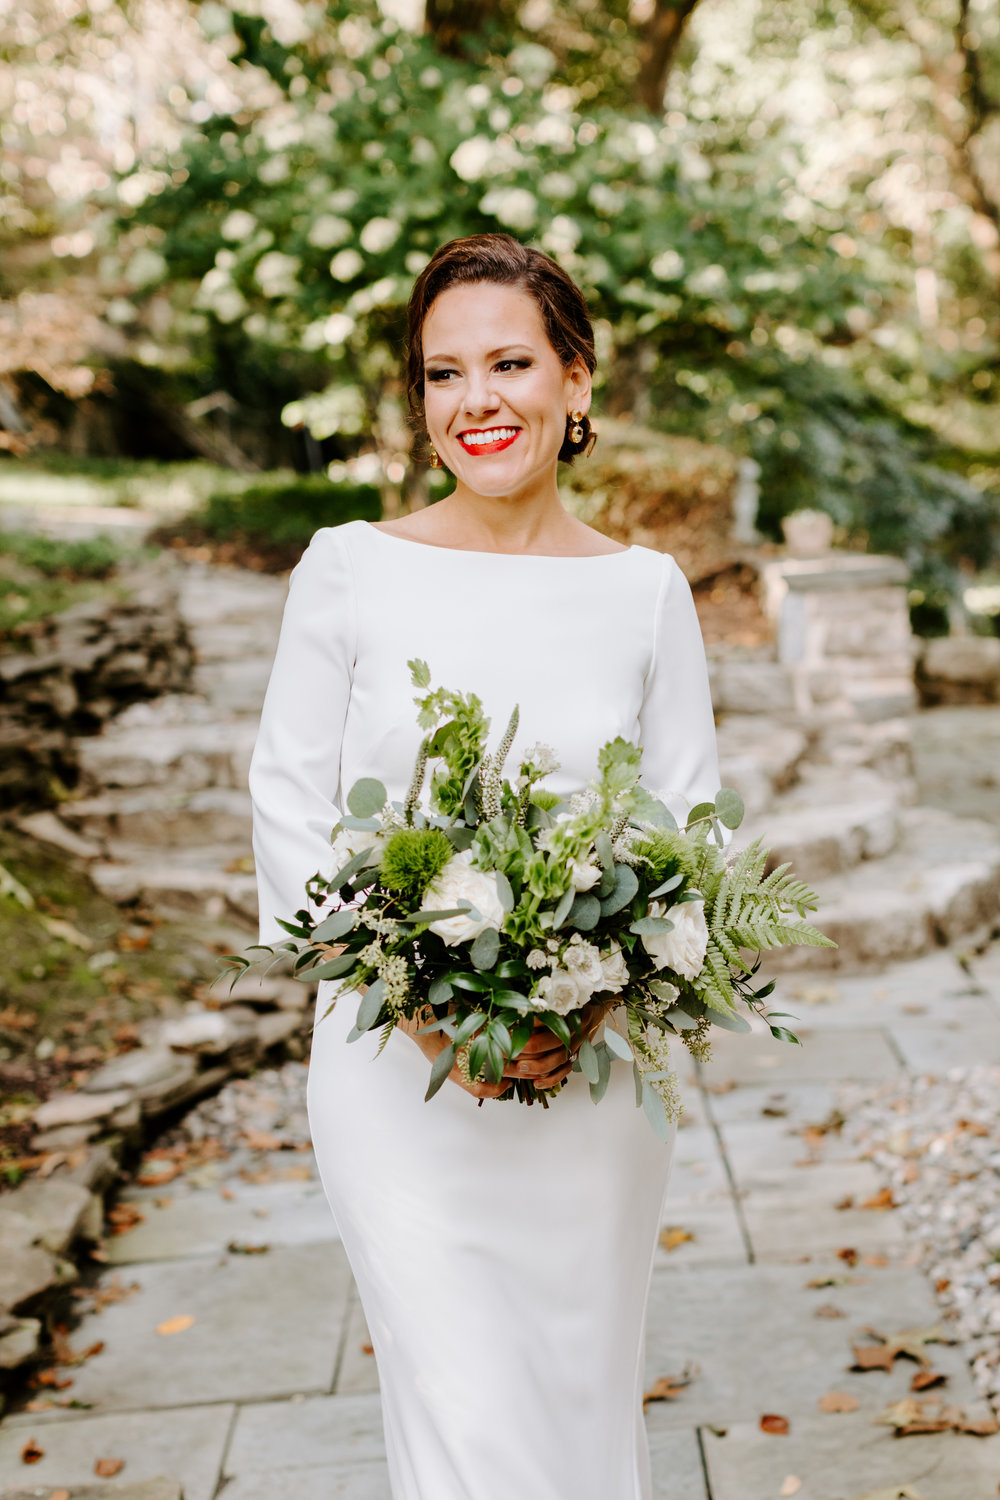 09.28.18 Marie +Jeff Alicia WIley Photography MD LC AC140.jpg